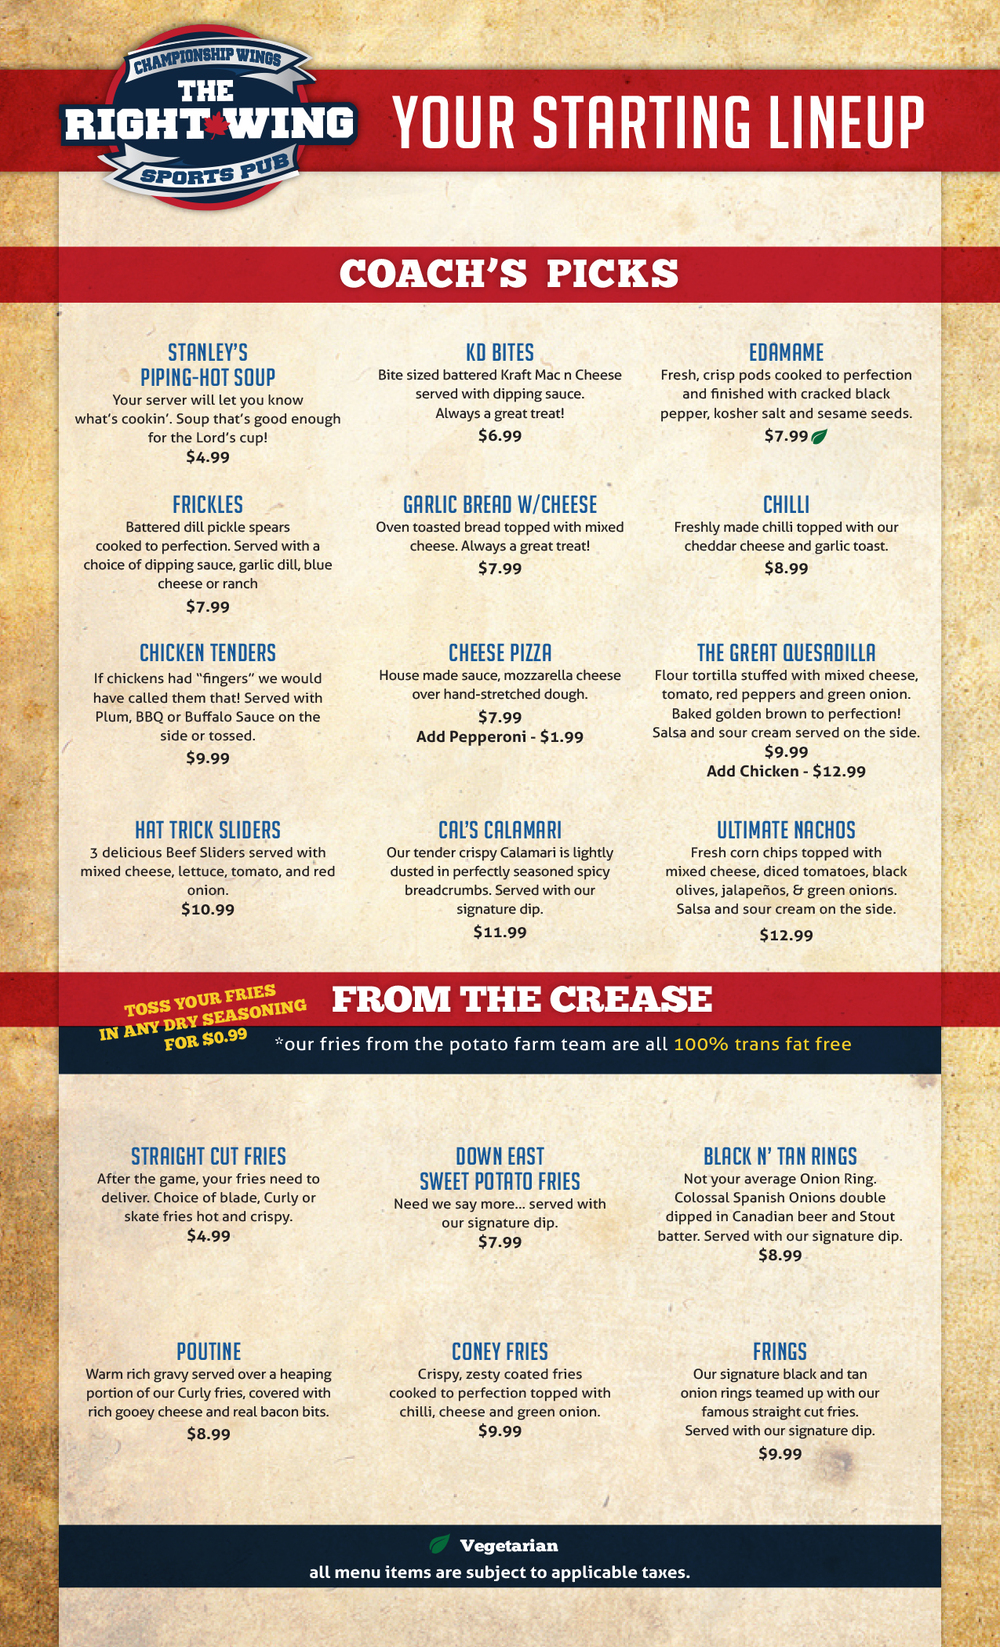 TheRightWing_Menu_FINAL2014-3.jpg